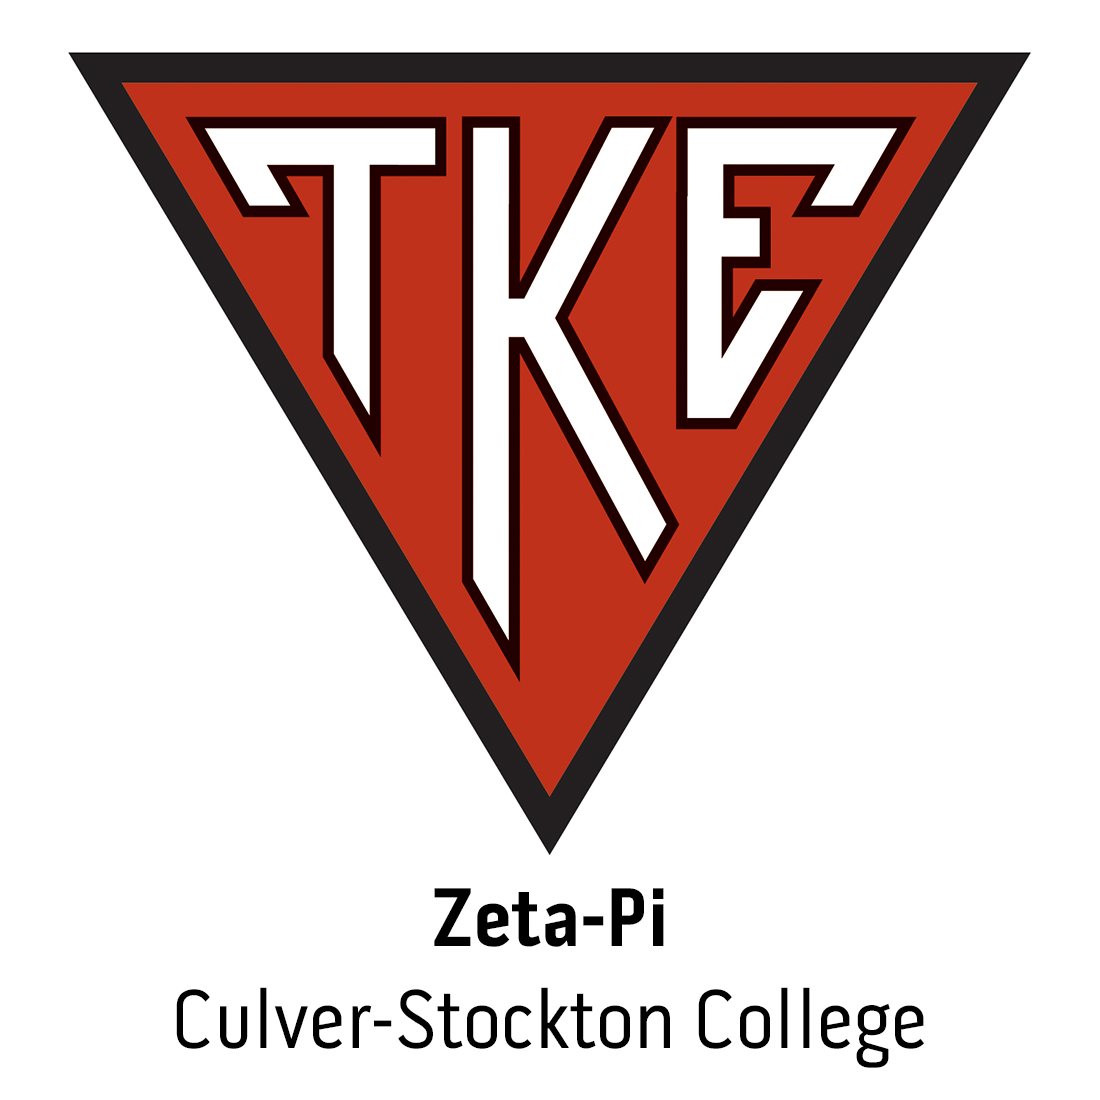 Zeta-Pi Chapter at Culver-Stockton College